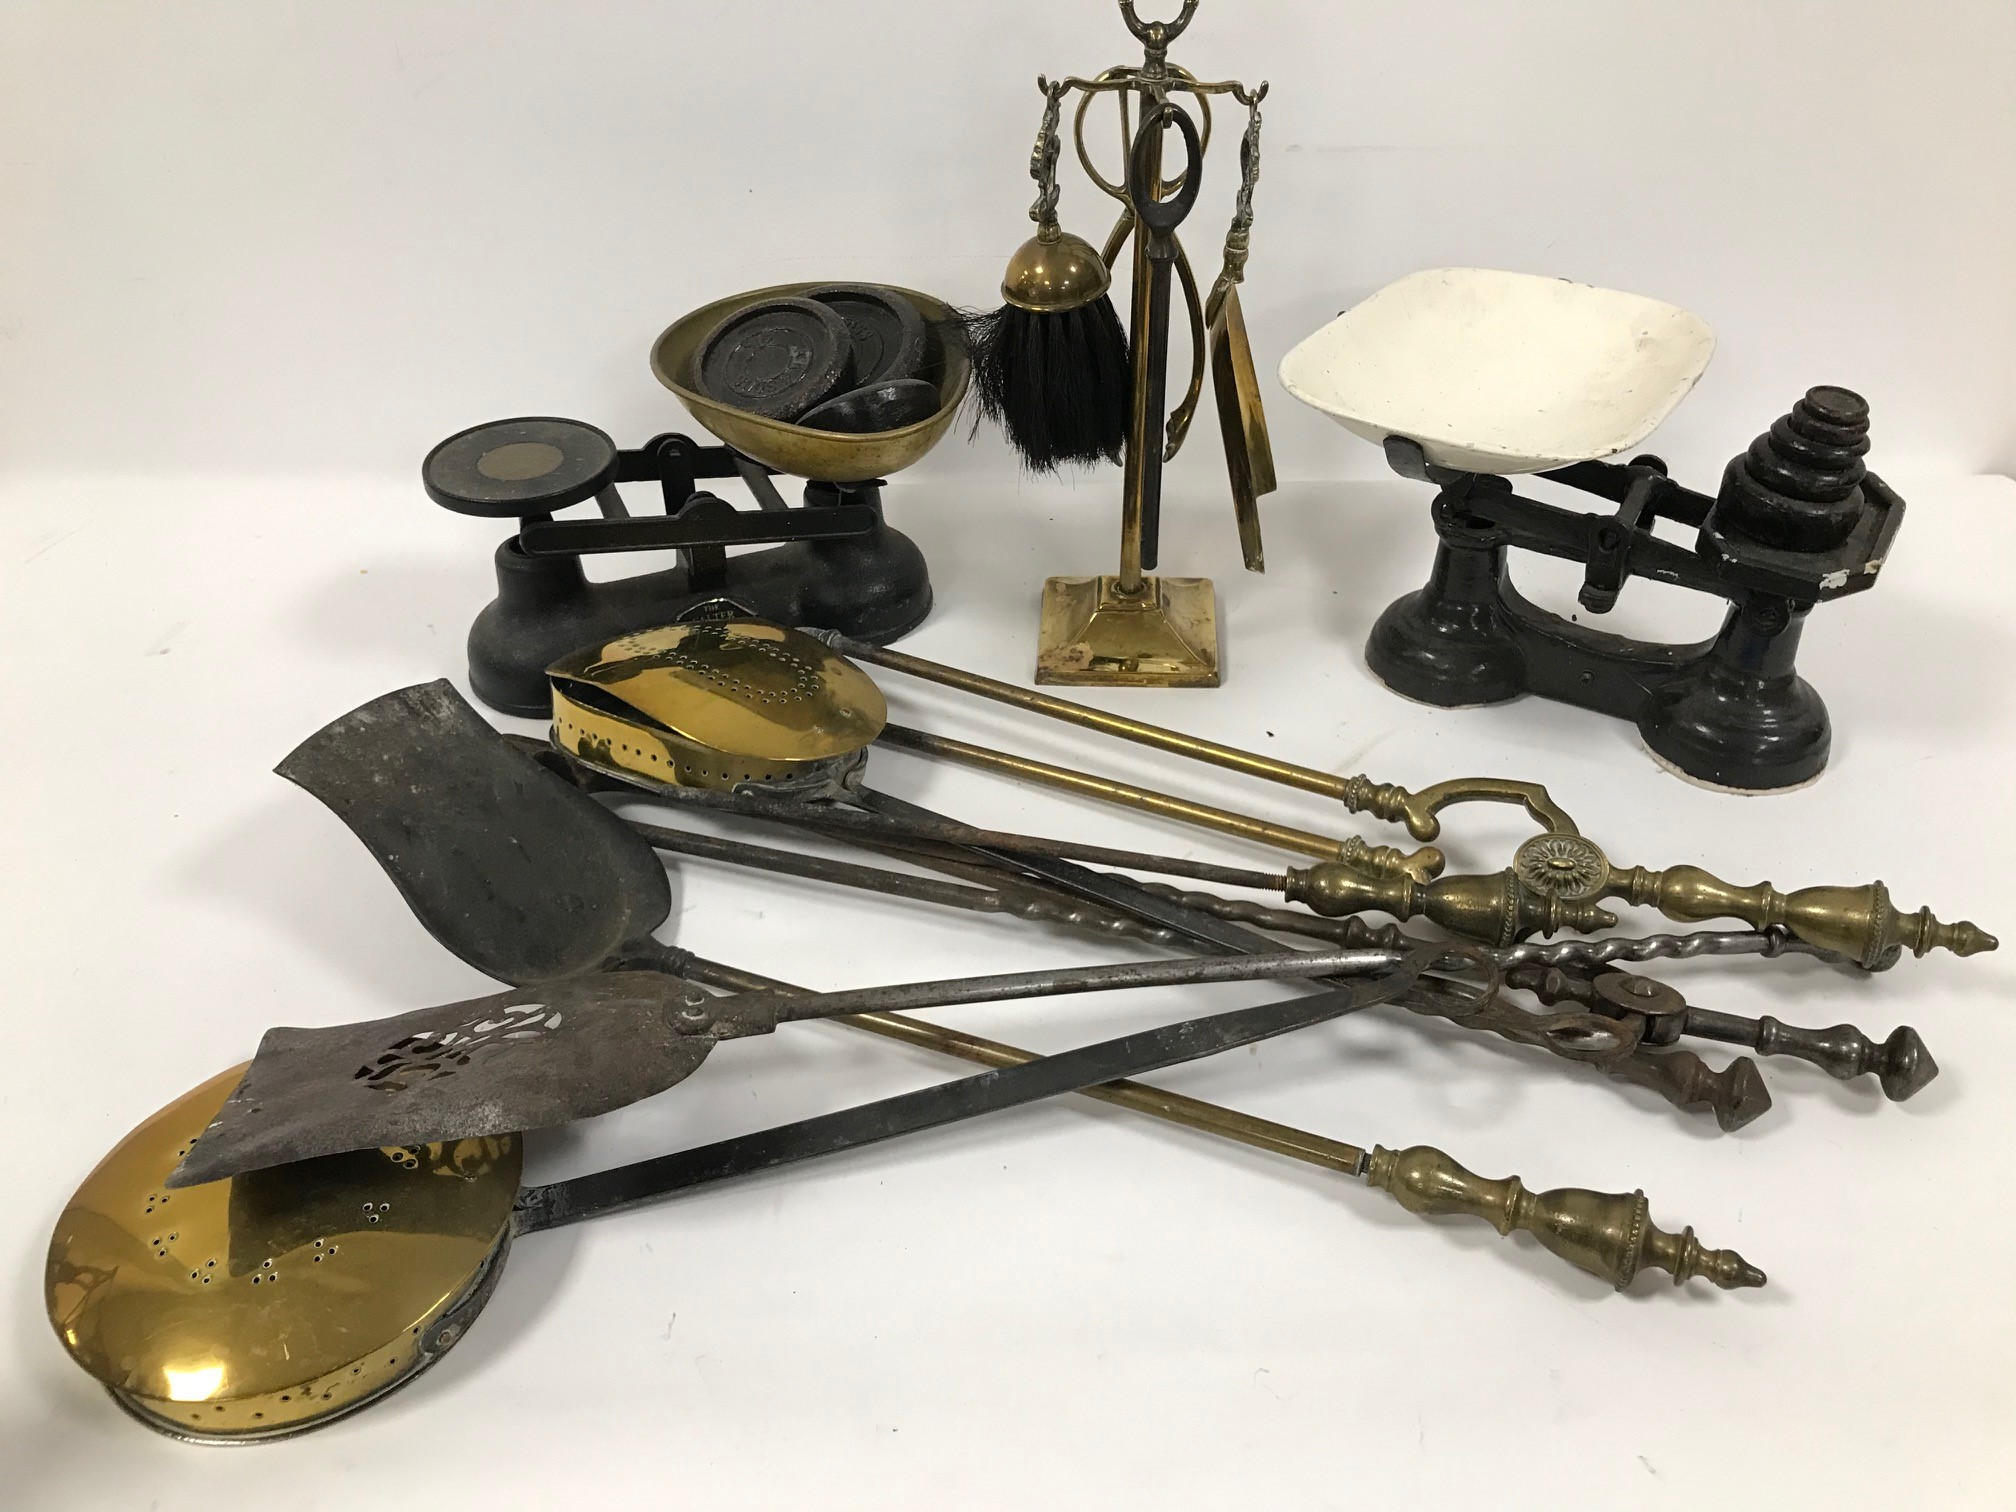 Two sets of vintage kitchen scales and weights, together with a small fire side companion and